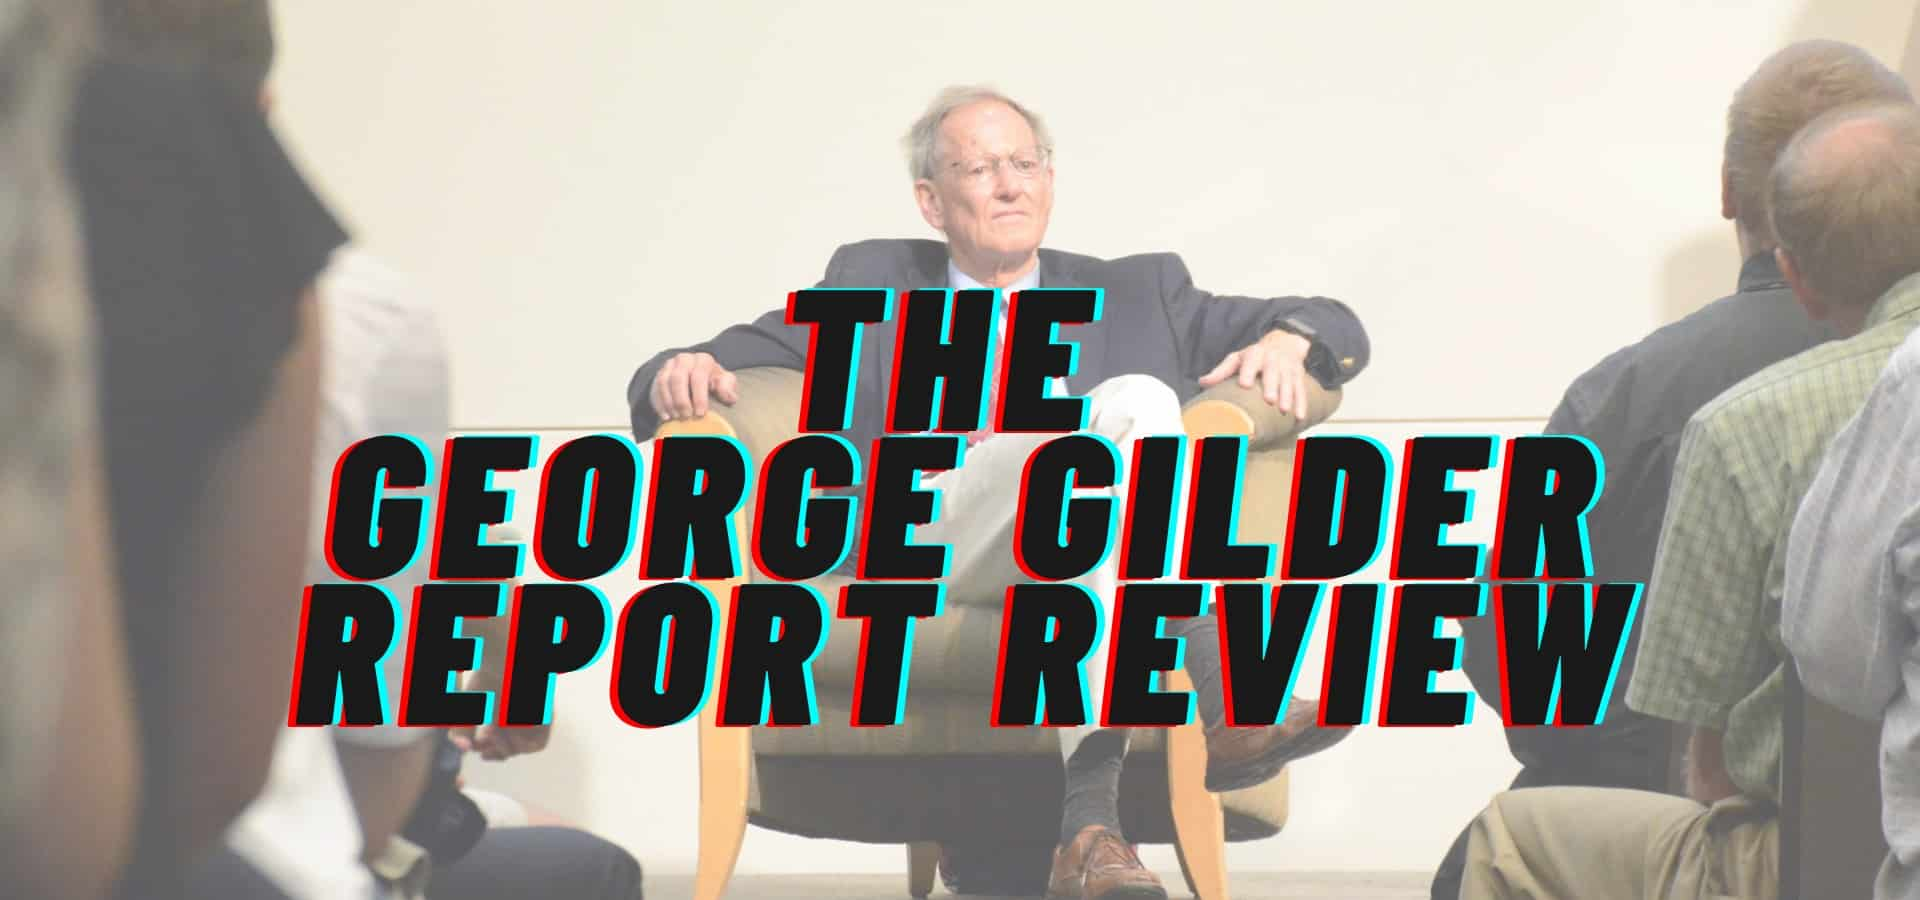 George Gilder Report Review: Is It the Real Deal?